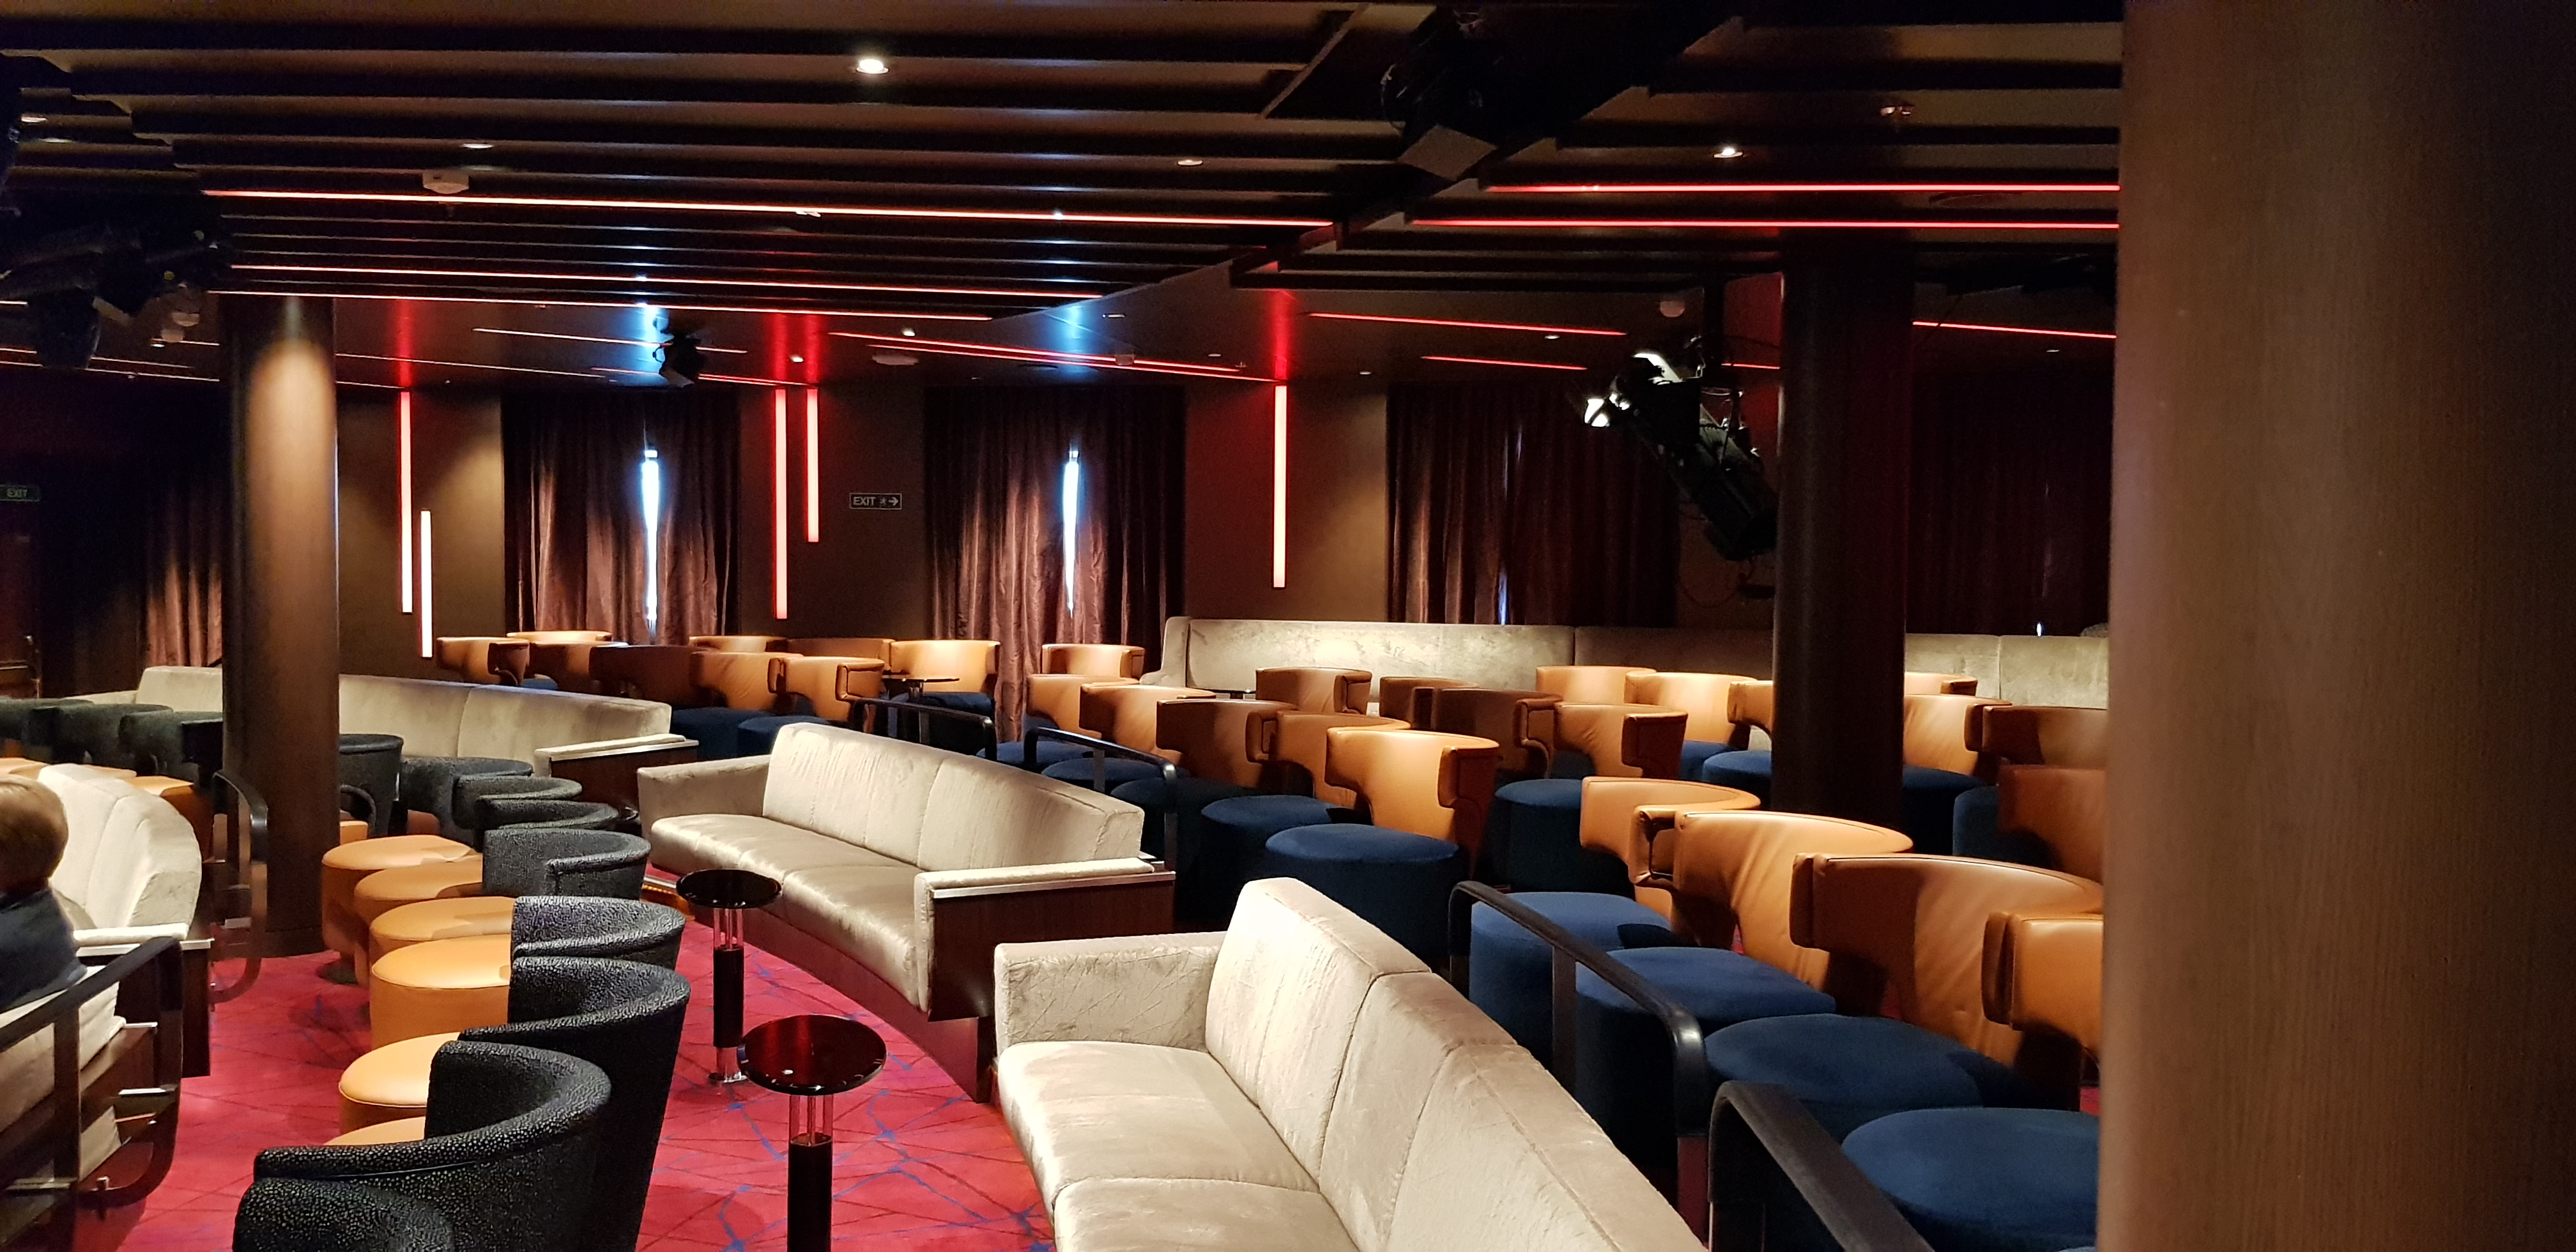 Theater on Seabourn Ovation